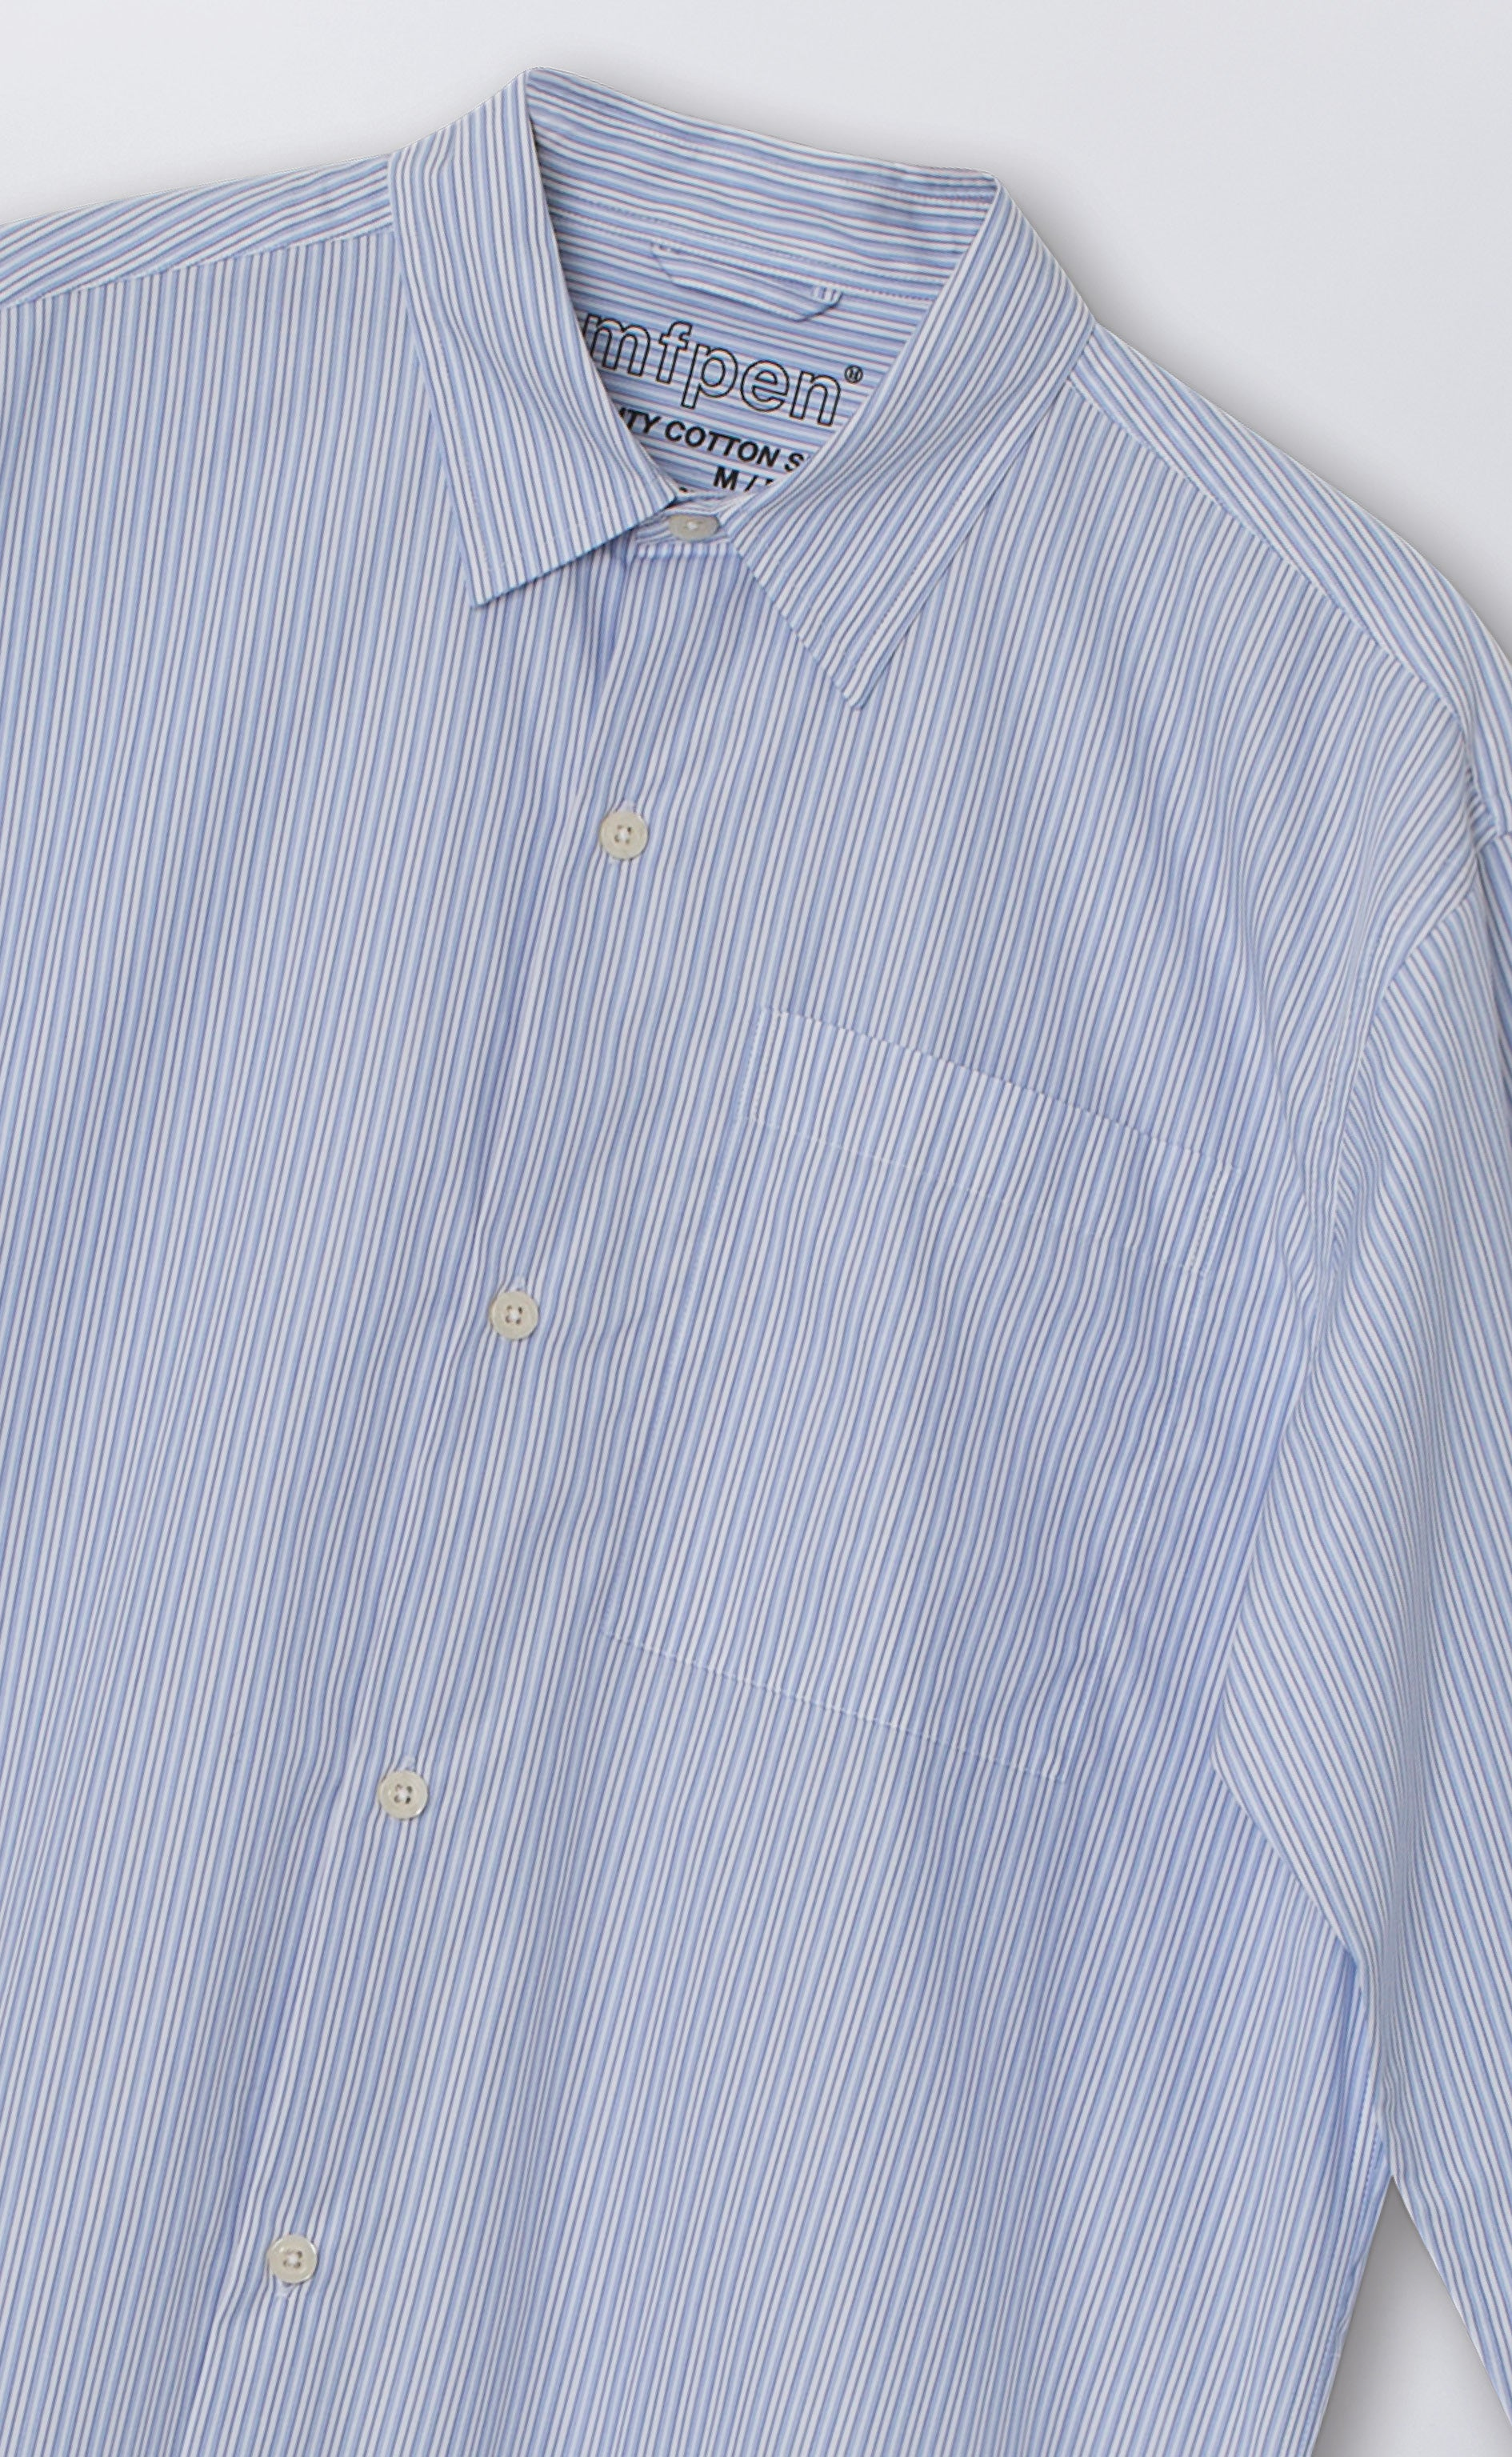 DISTANT SHIRT - LIGHT BLUE STRIPE